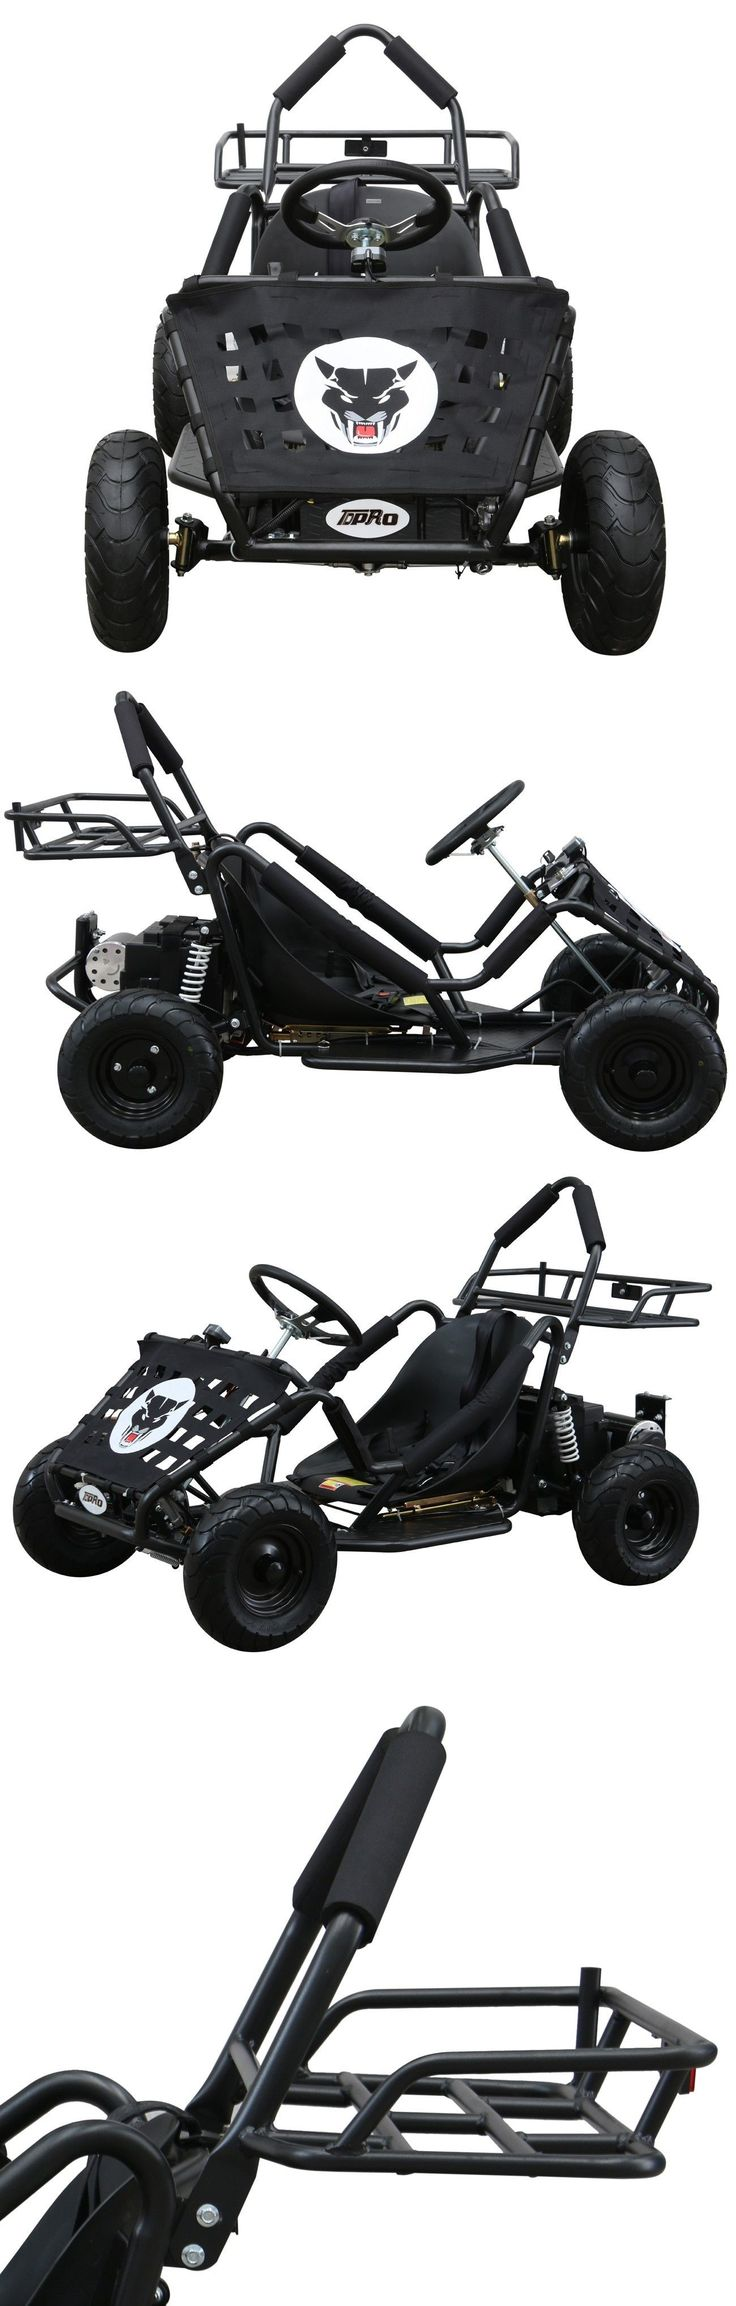 The exciting brand new street legal cruser sport elec car amp golf cart - Complete Go Karts And Frames 64656 1000w Adult Kid Electric Go Kart Brushless Motor